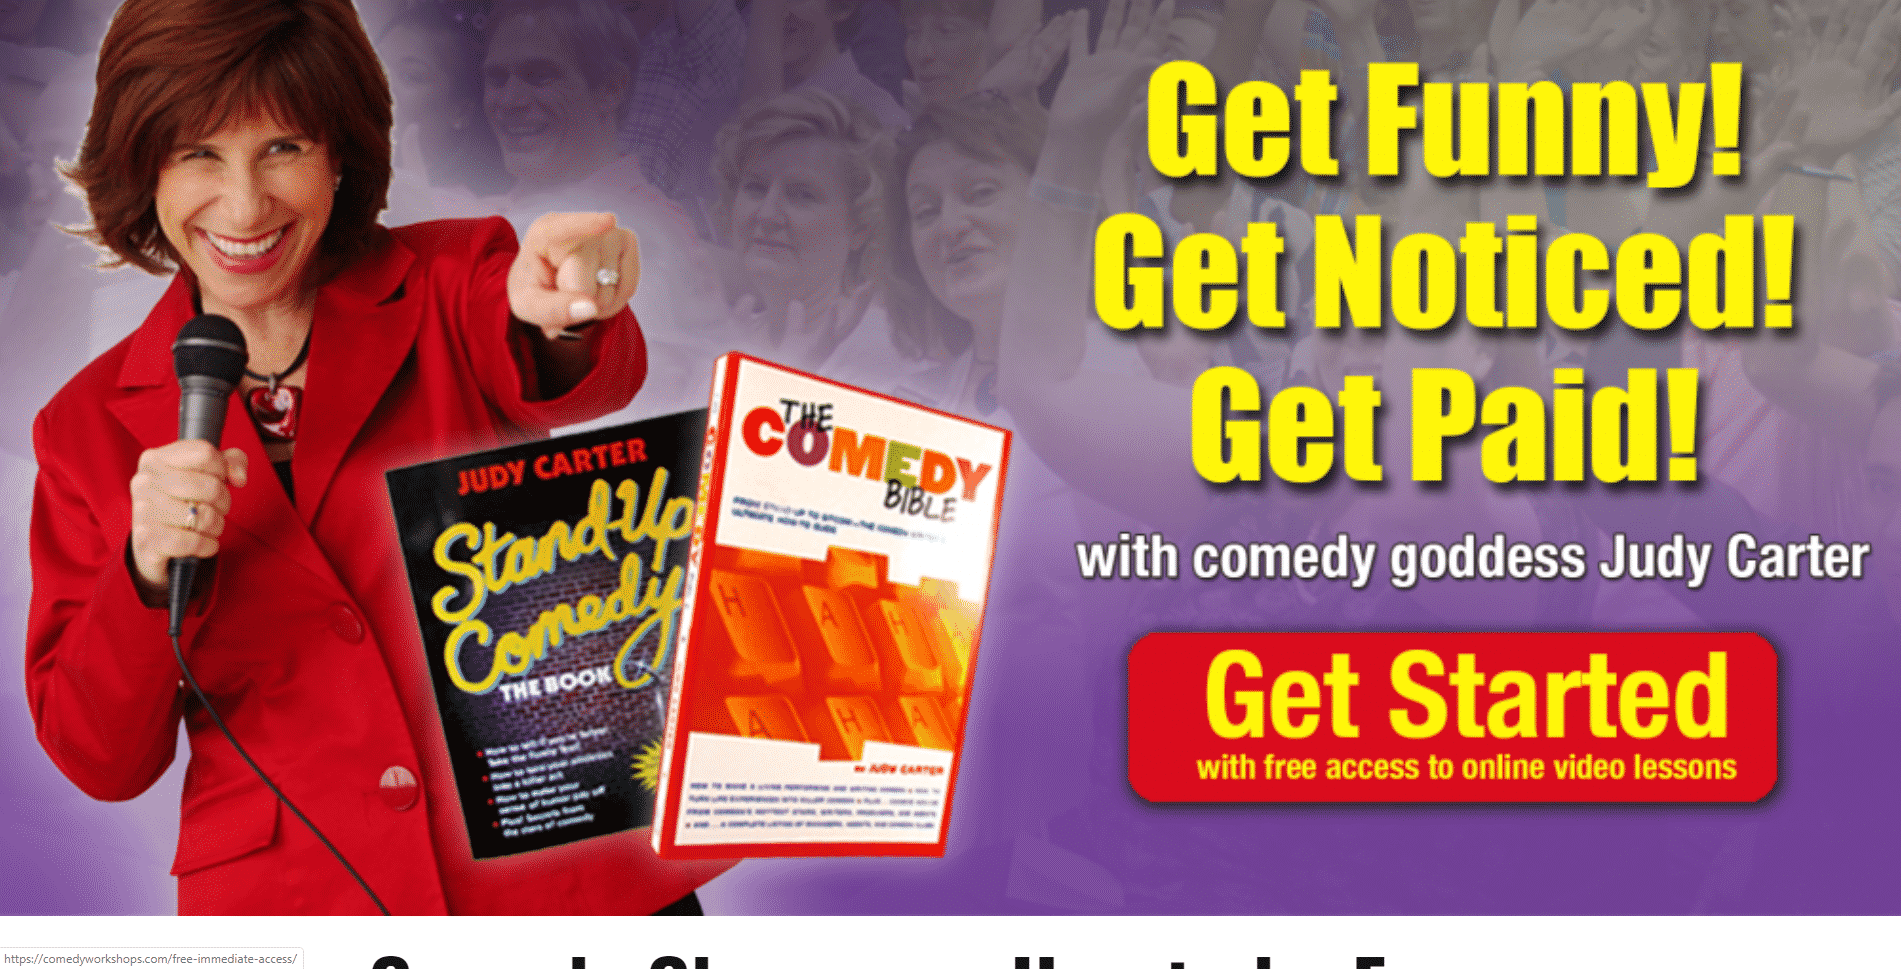 Comedy Workshop Learn Comedy Lessons Online